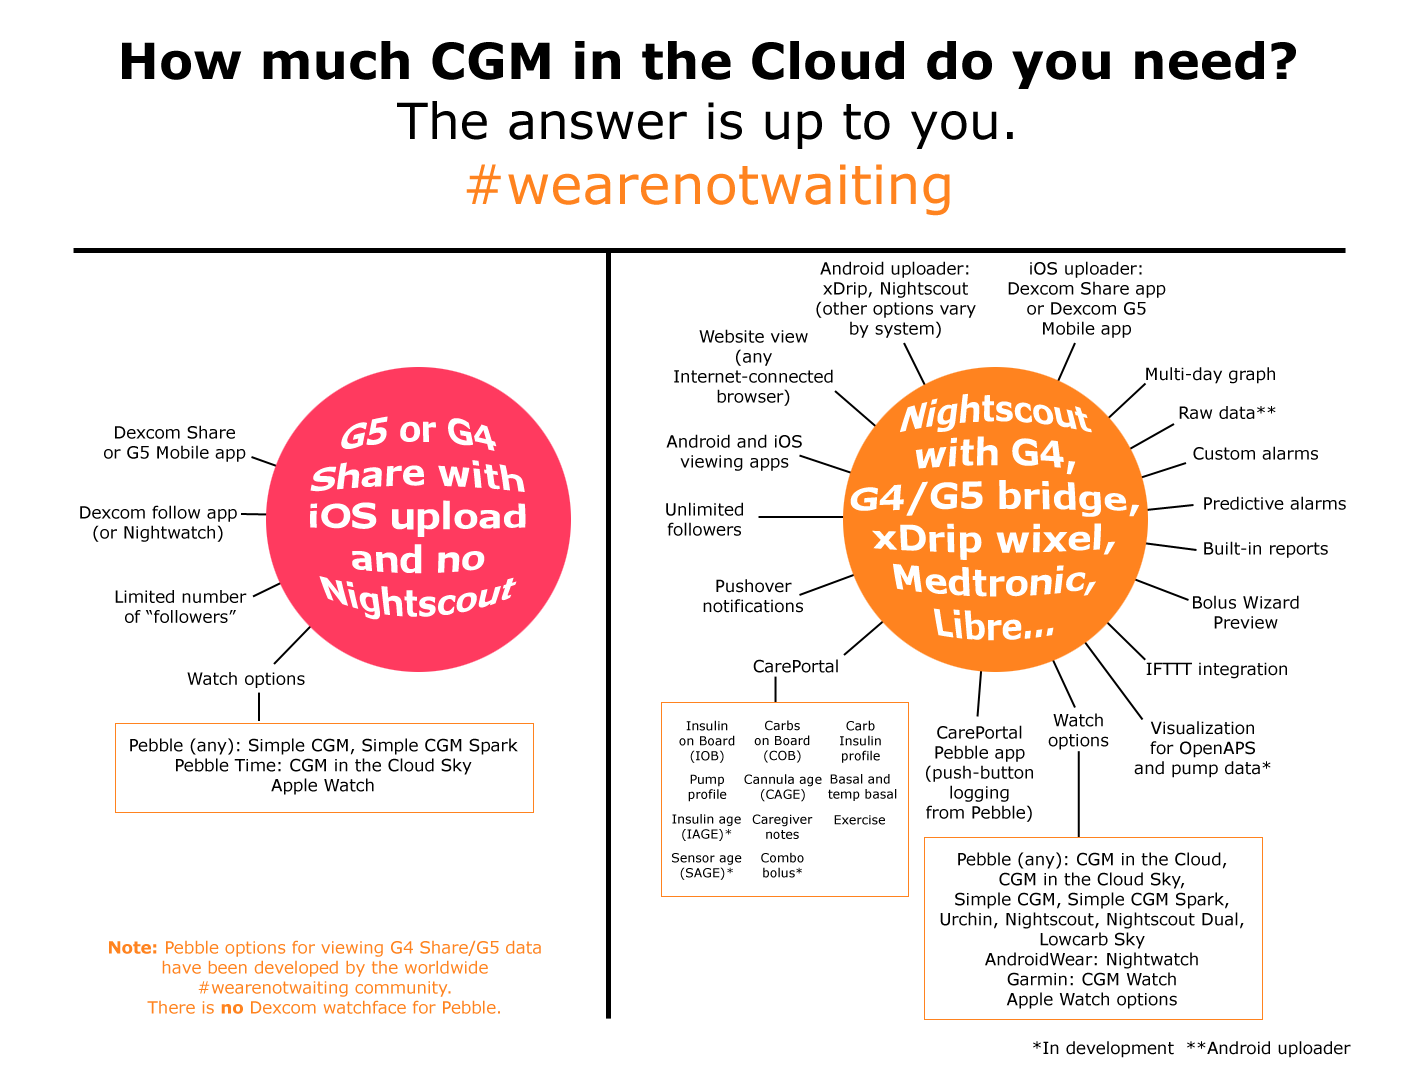 Nightscout feature image/How much CGM in the Cloud do you need?